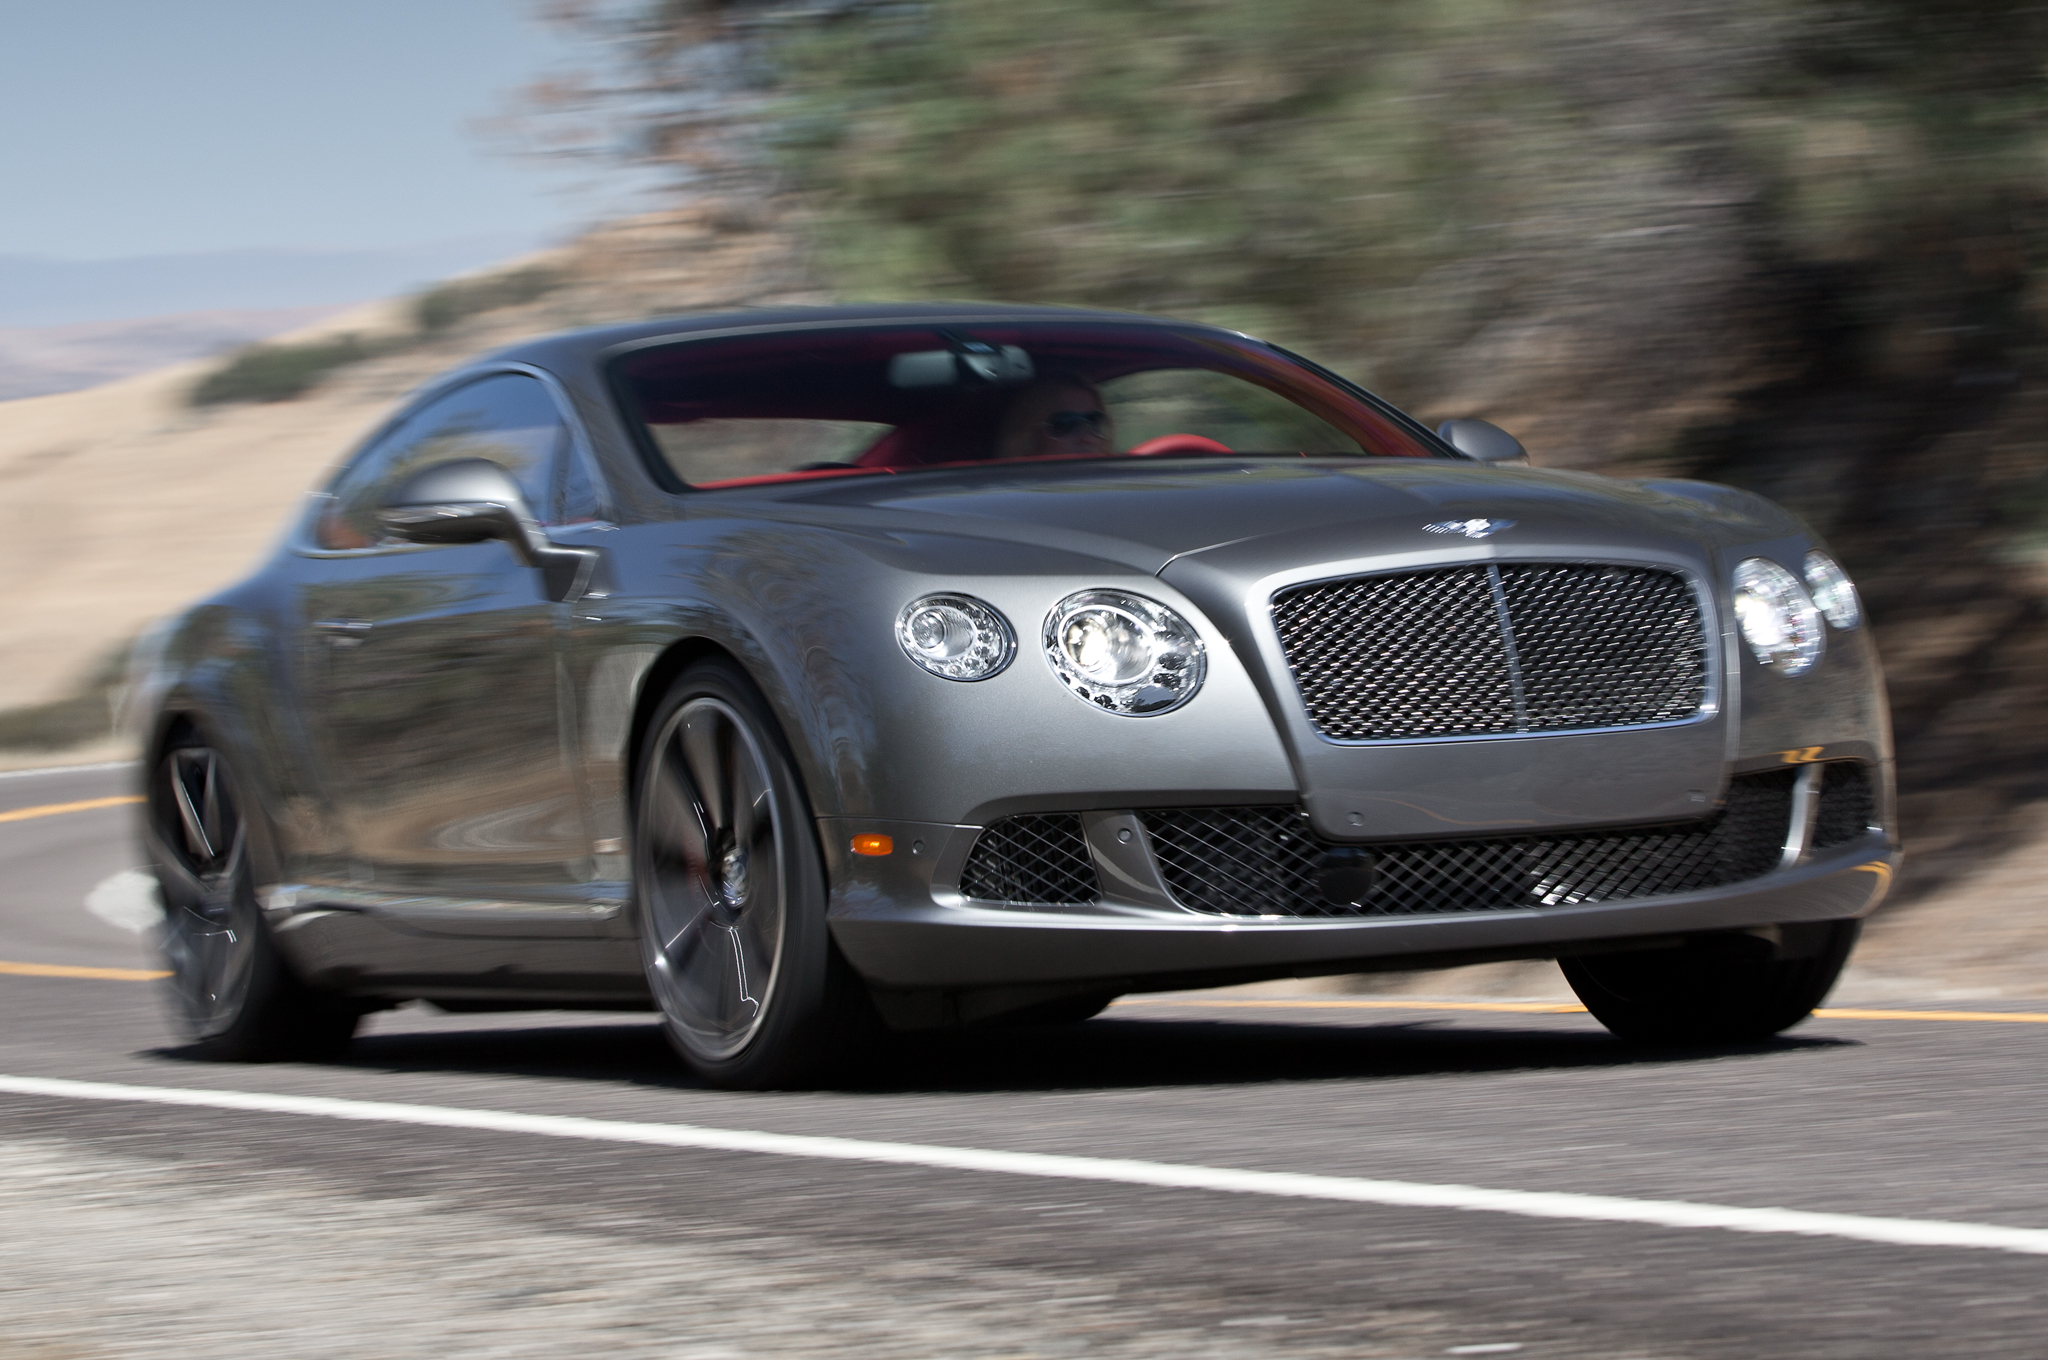 Bentley Continental GT 6.0 2013 photo - 9